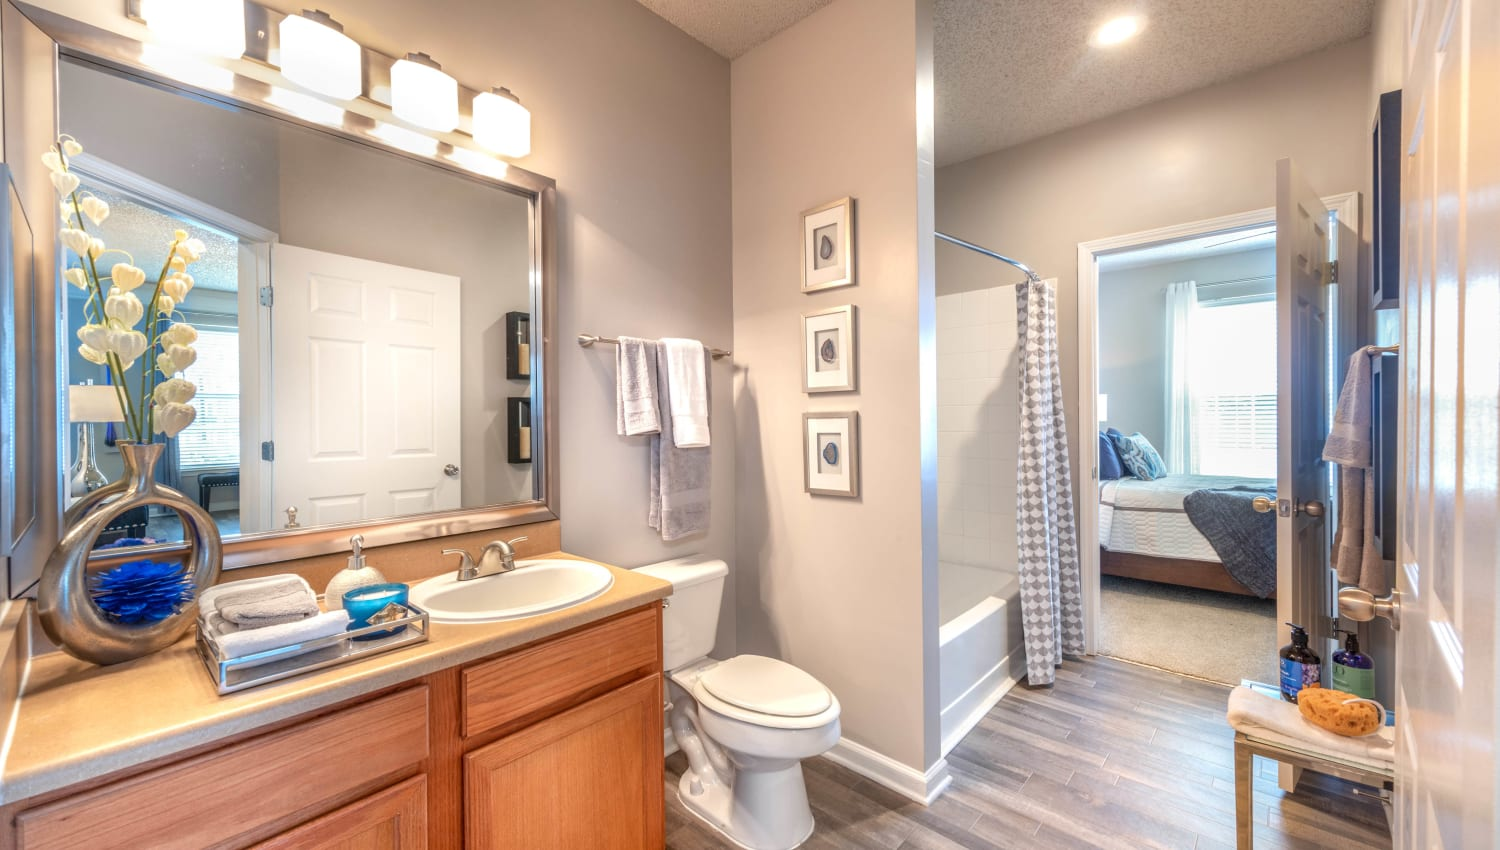 En suite bathroom with hardwood flooring off the master bedroom in a model home at Olympus Fenwick in Savannah, Georgia